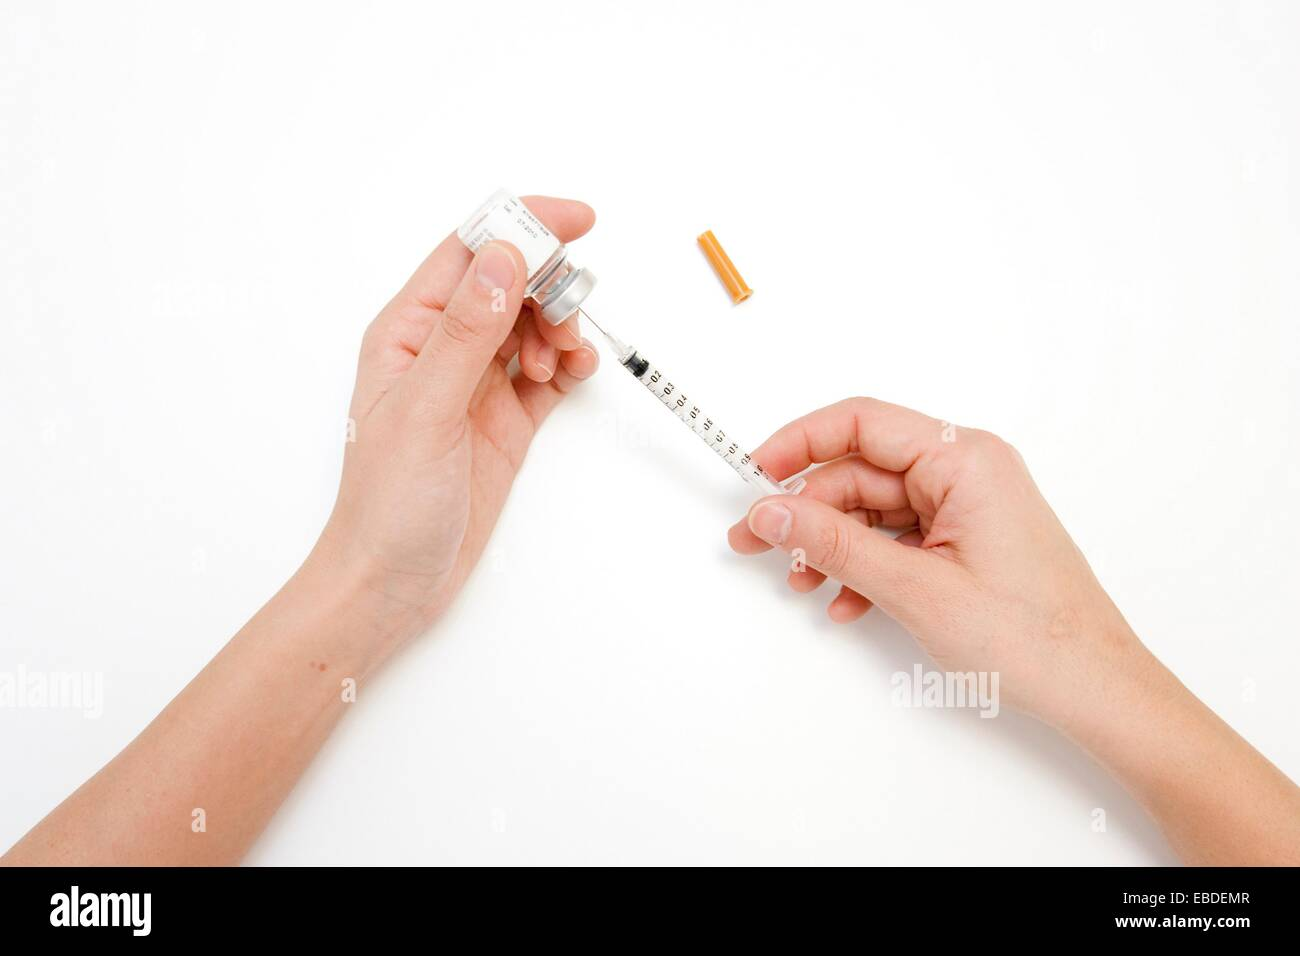 Insulin injection - Stock Image